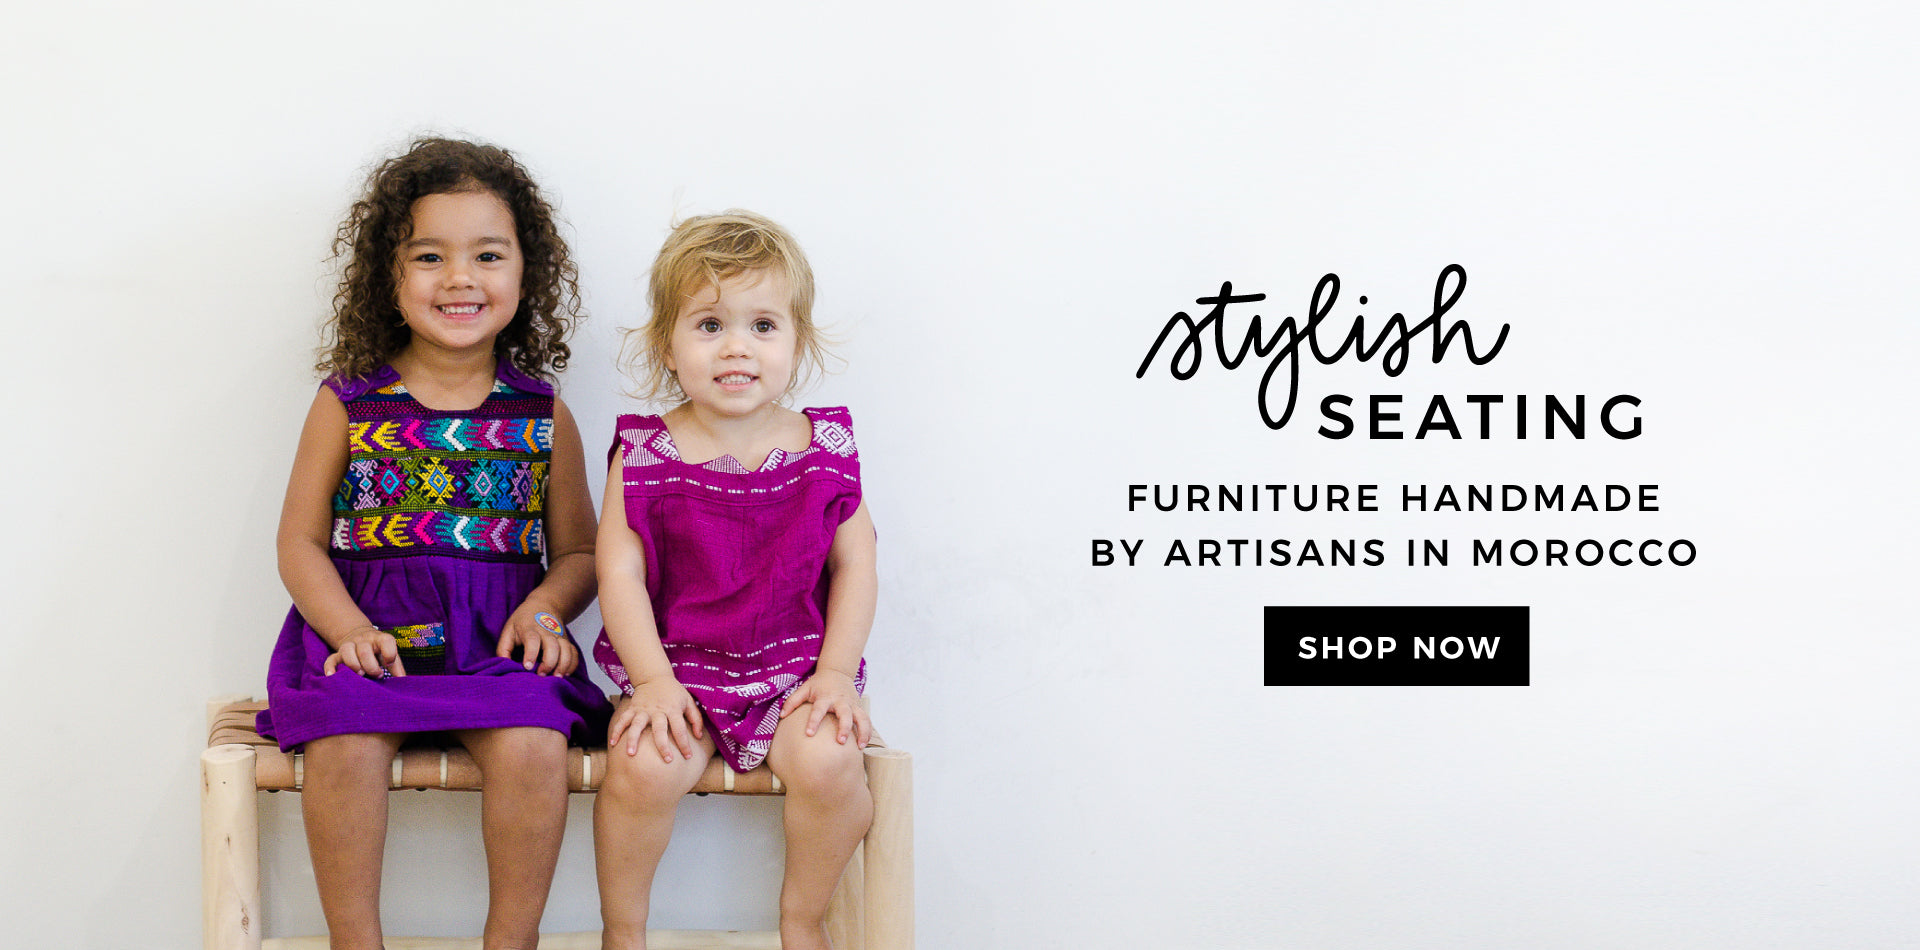 Shop Furniture from Morocco